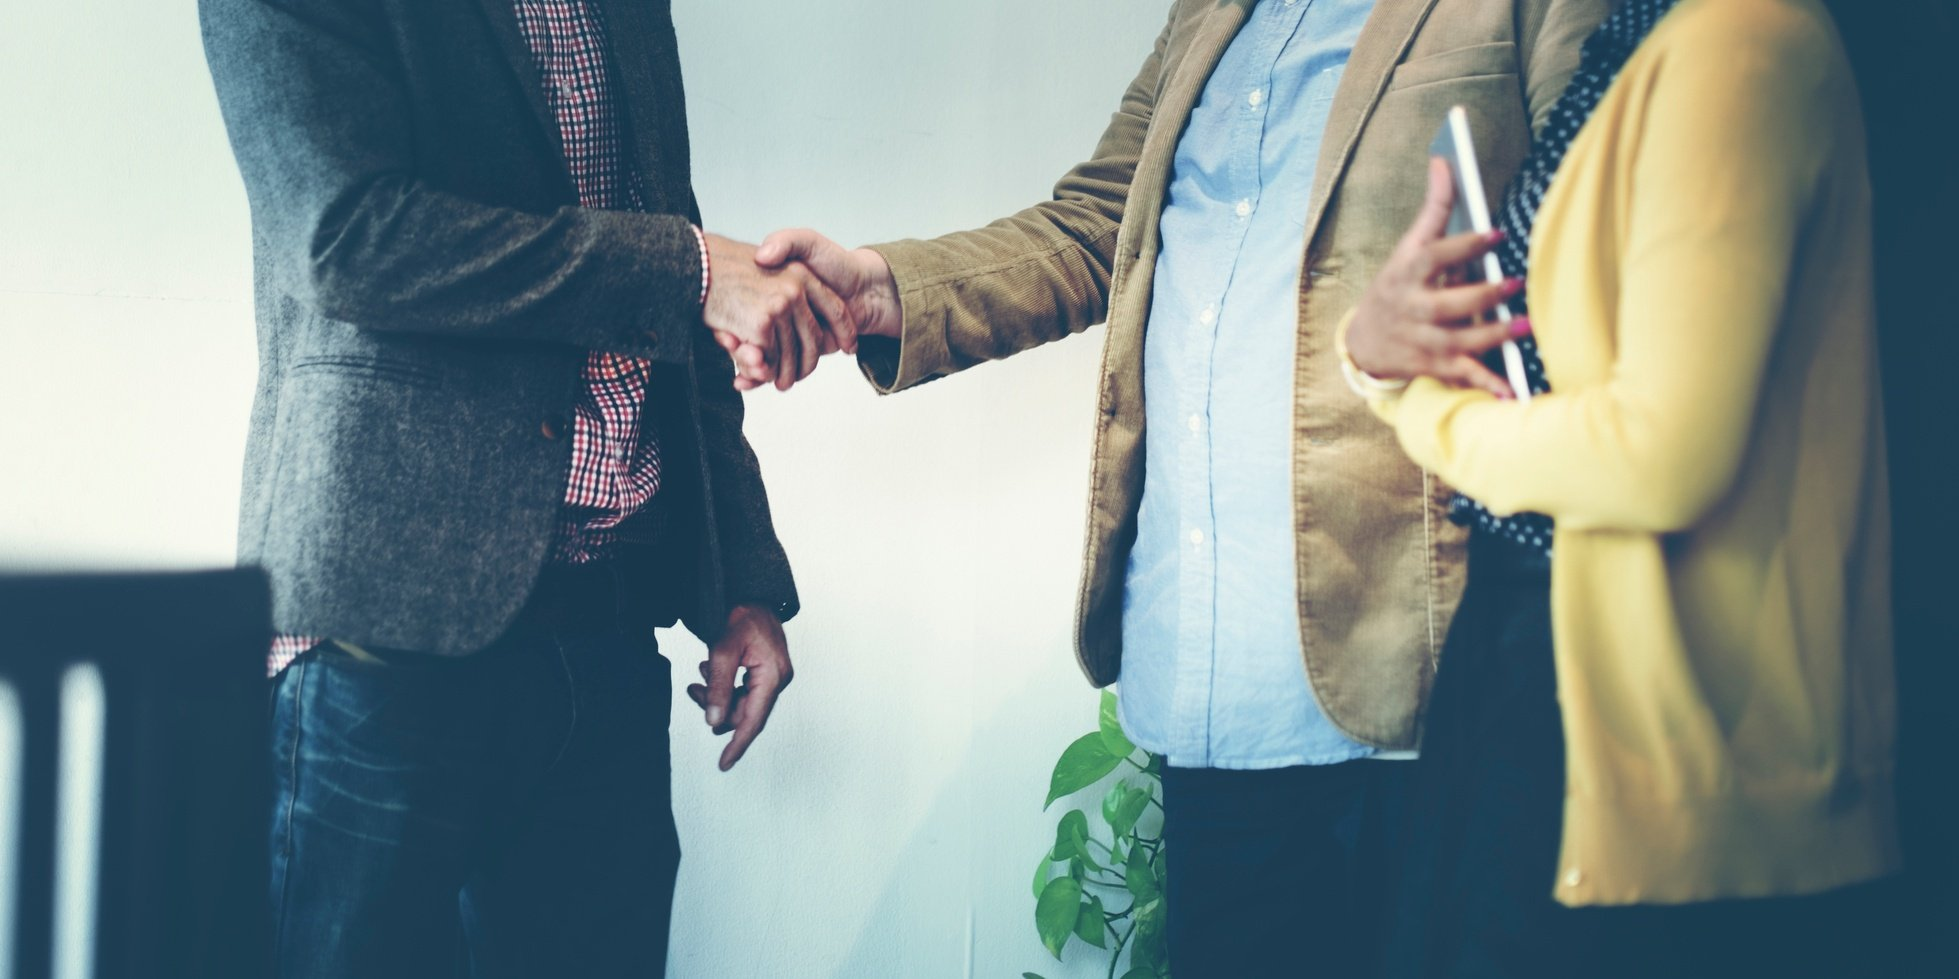 Business-Team-Partnership-Greeting-Handshake-Concept-000080824521_Medium.jpg